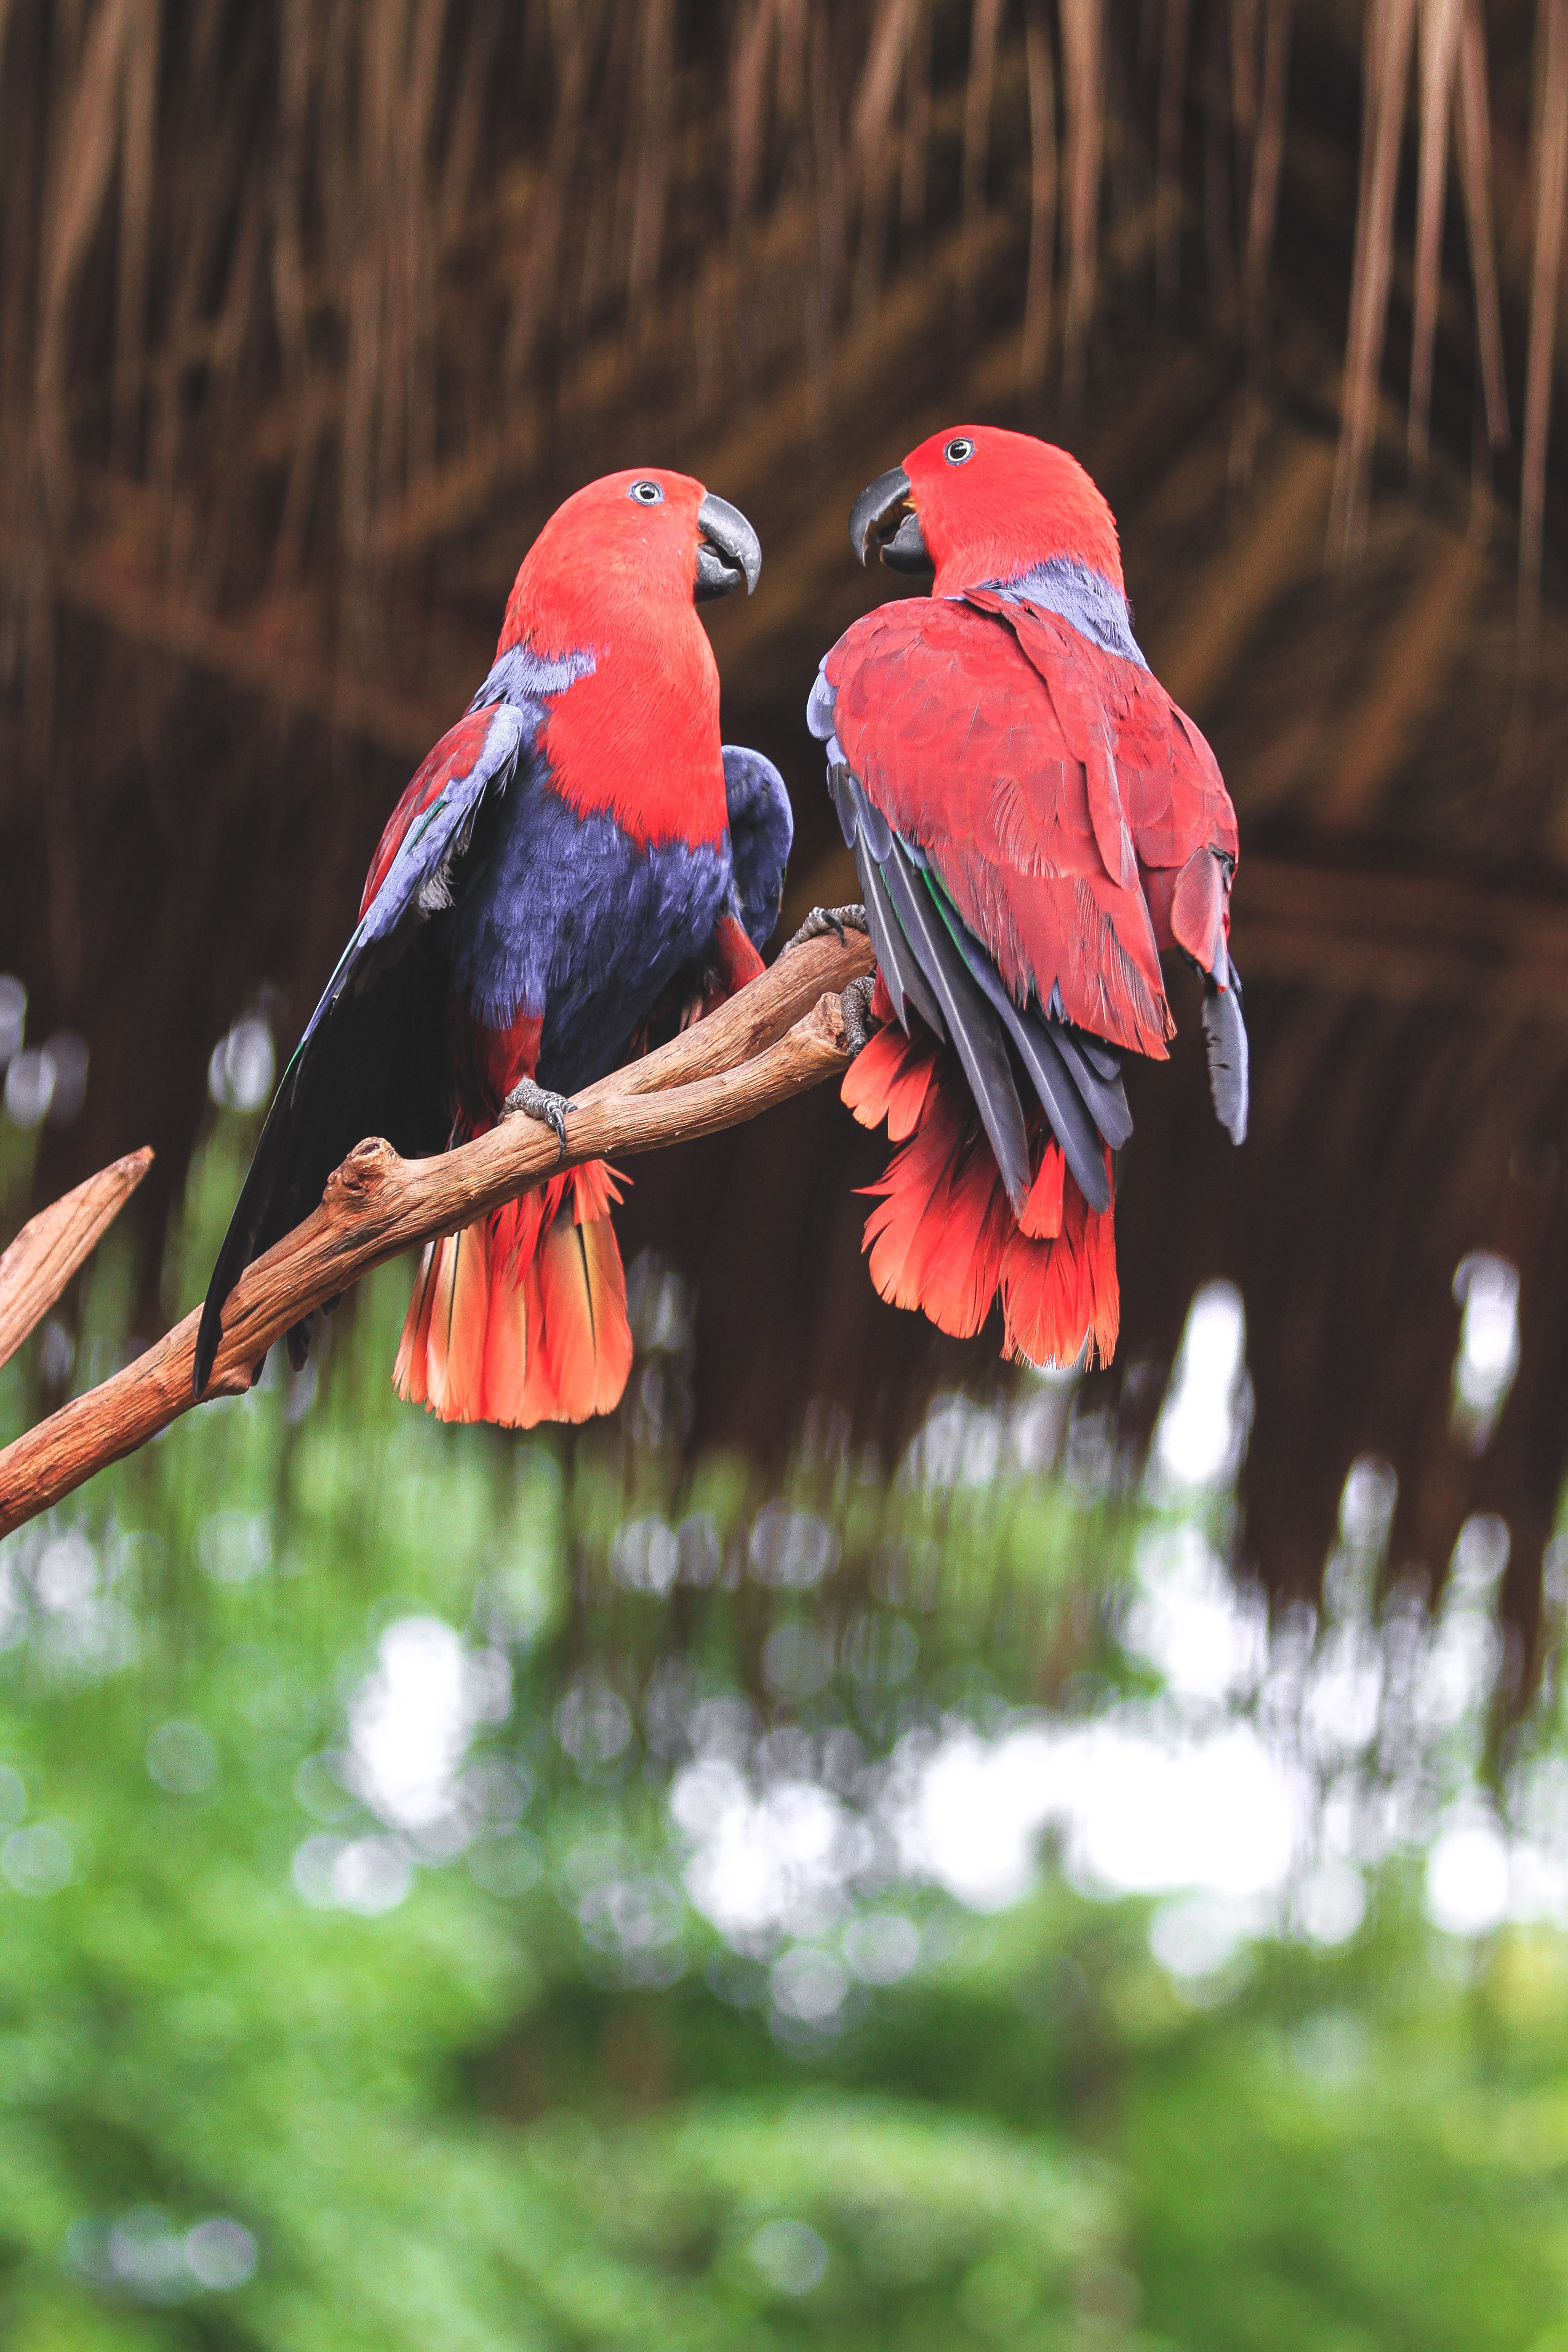 109324 download wallpaper Birds, Animals, Parrots, Branch screensavers and pictures for free